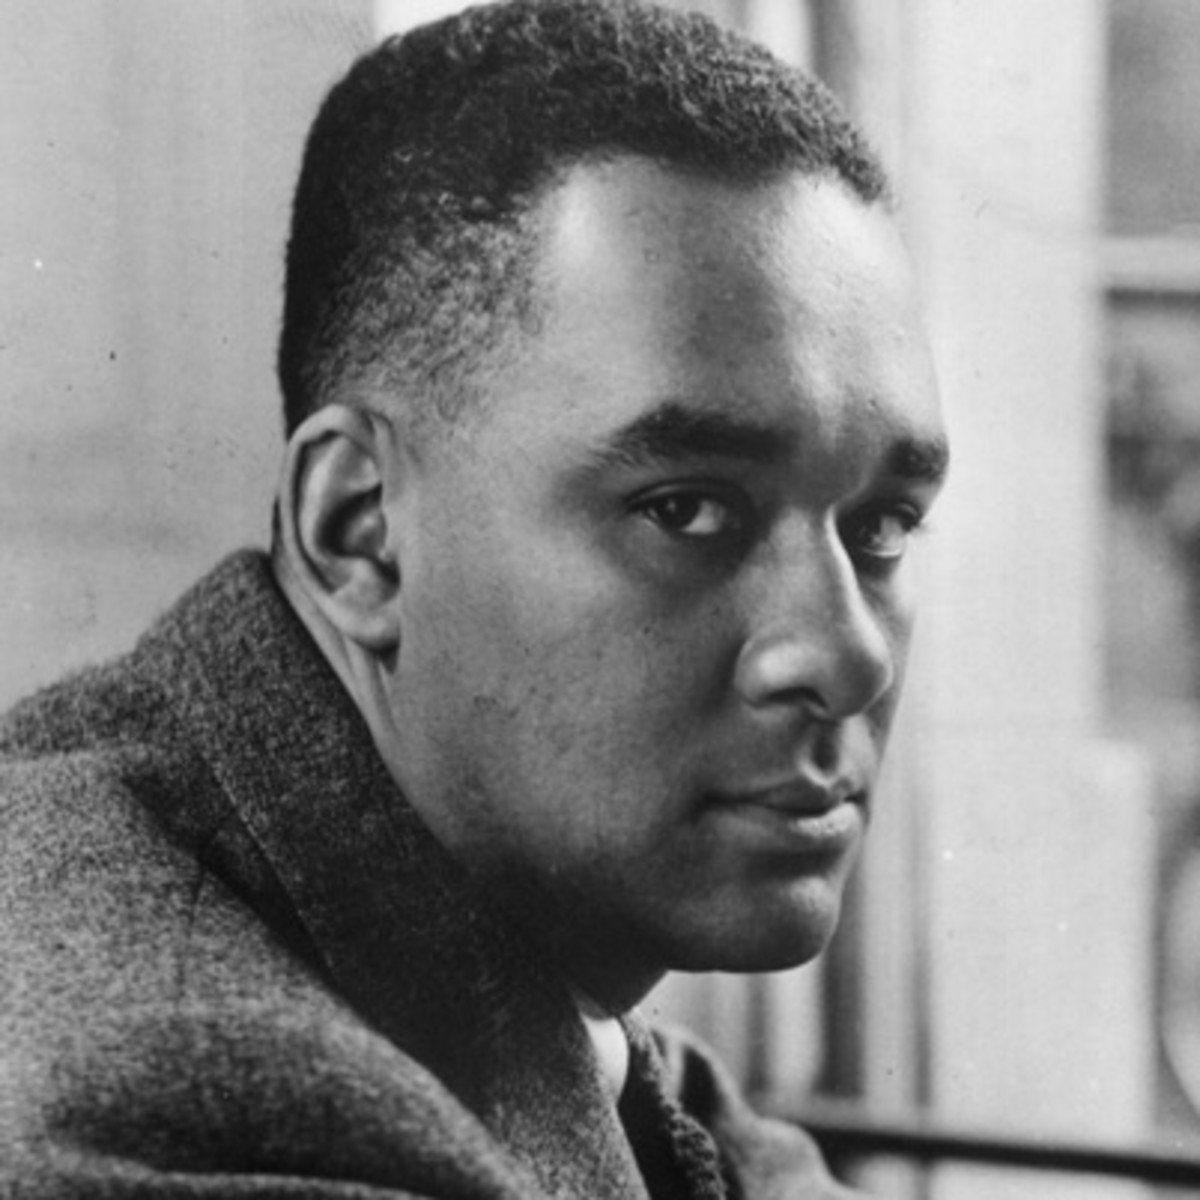 richard wright poet author journalist com